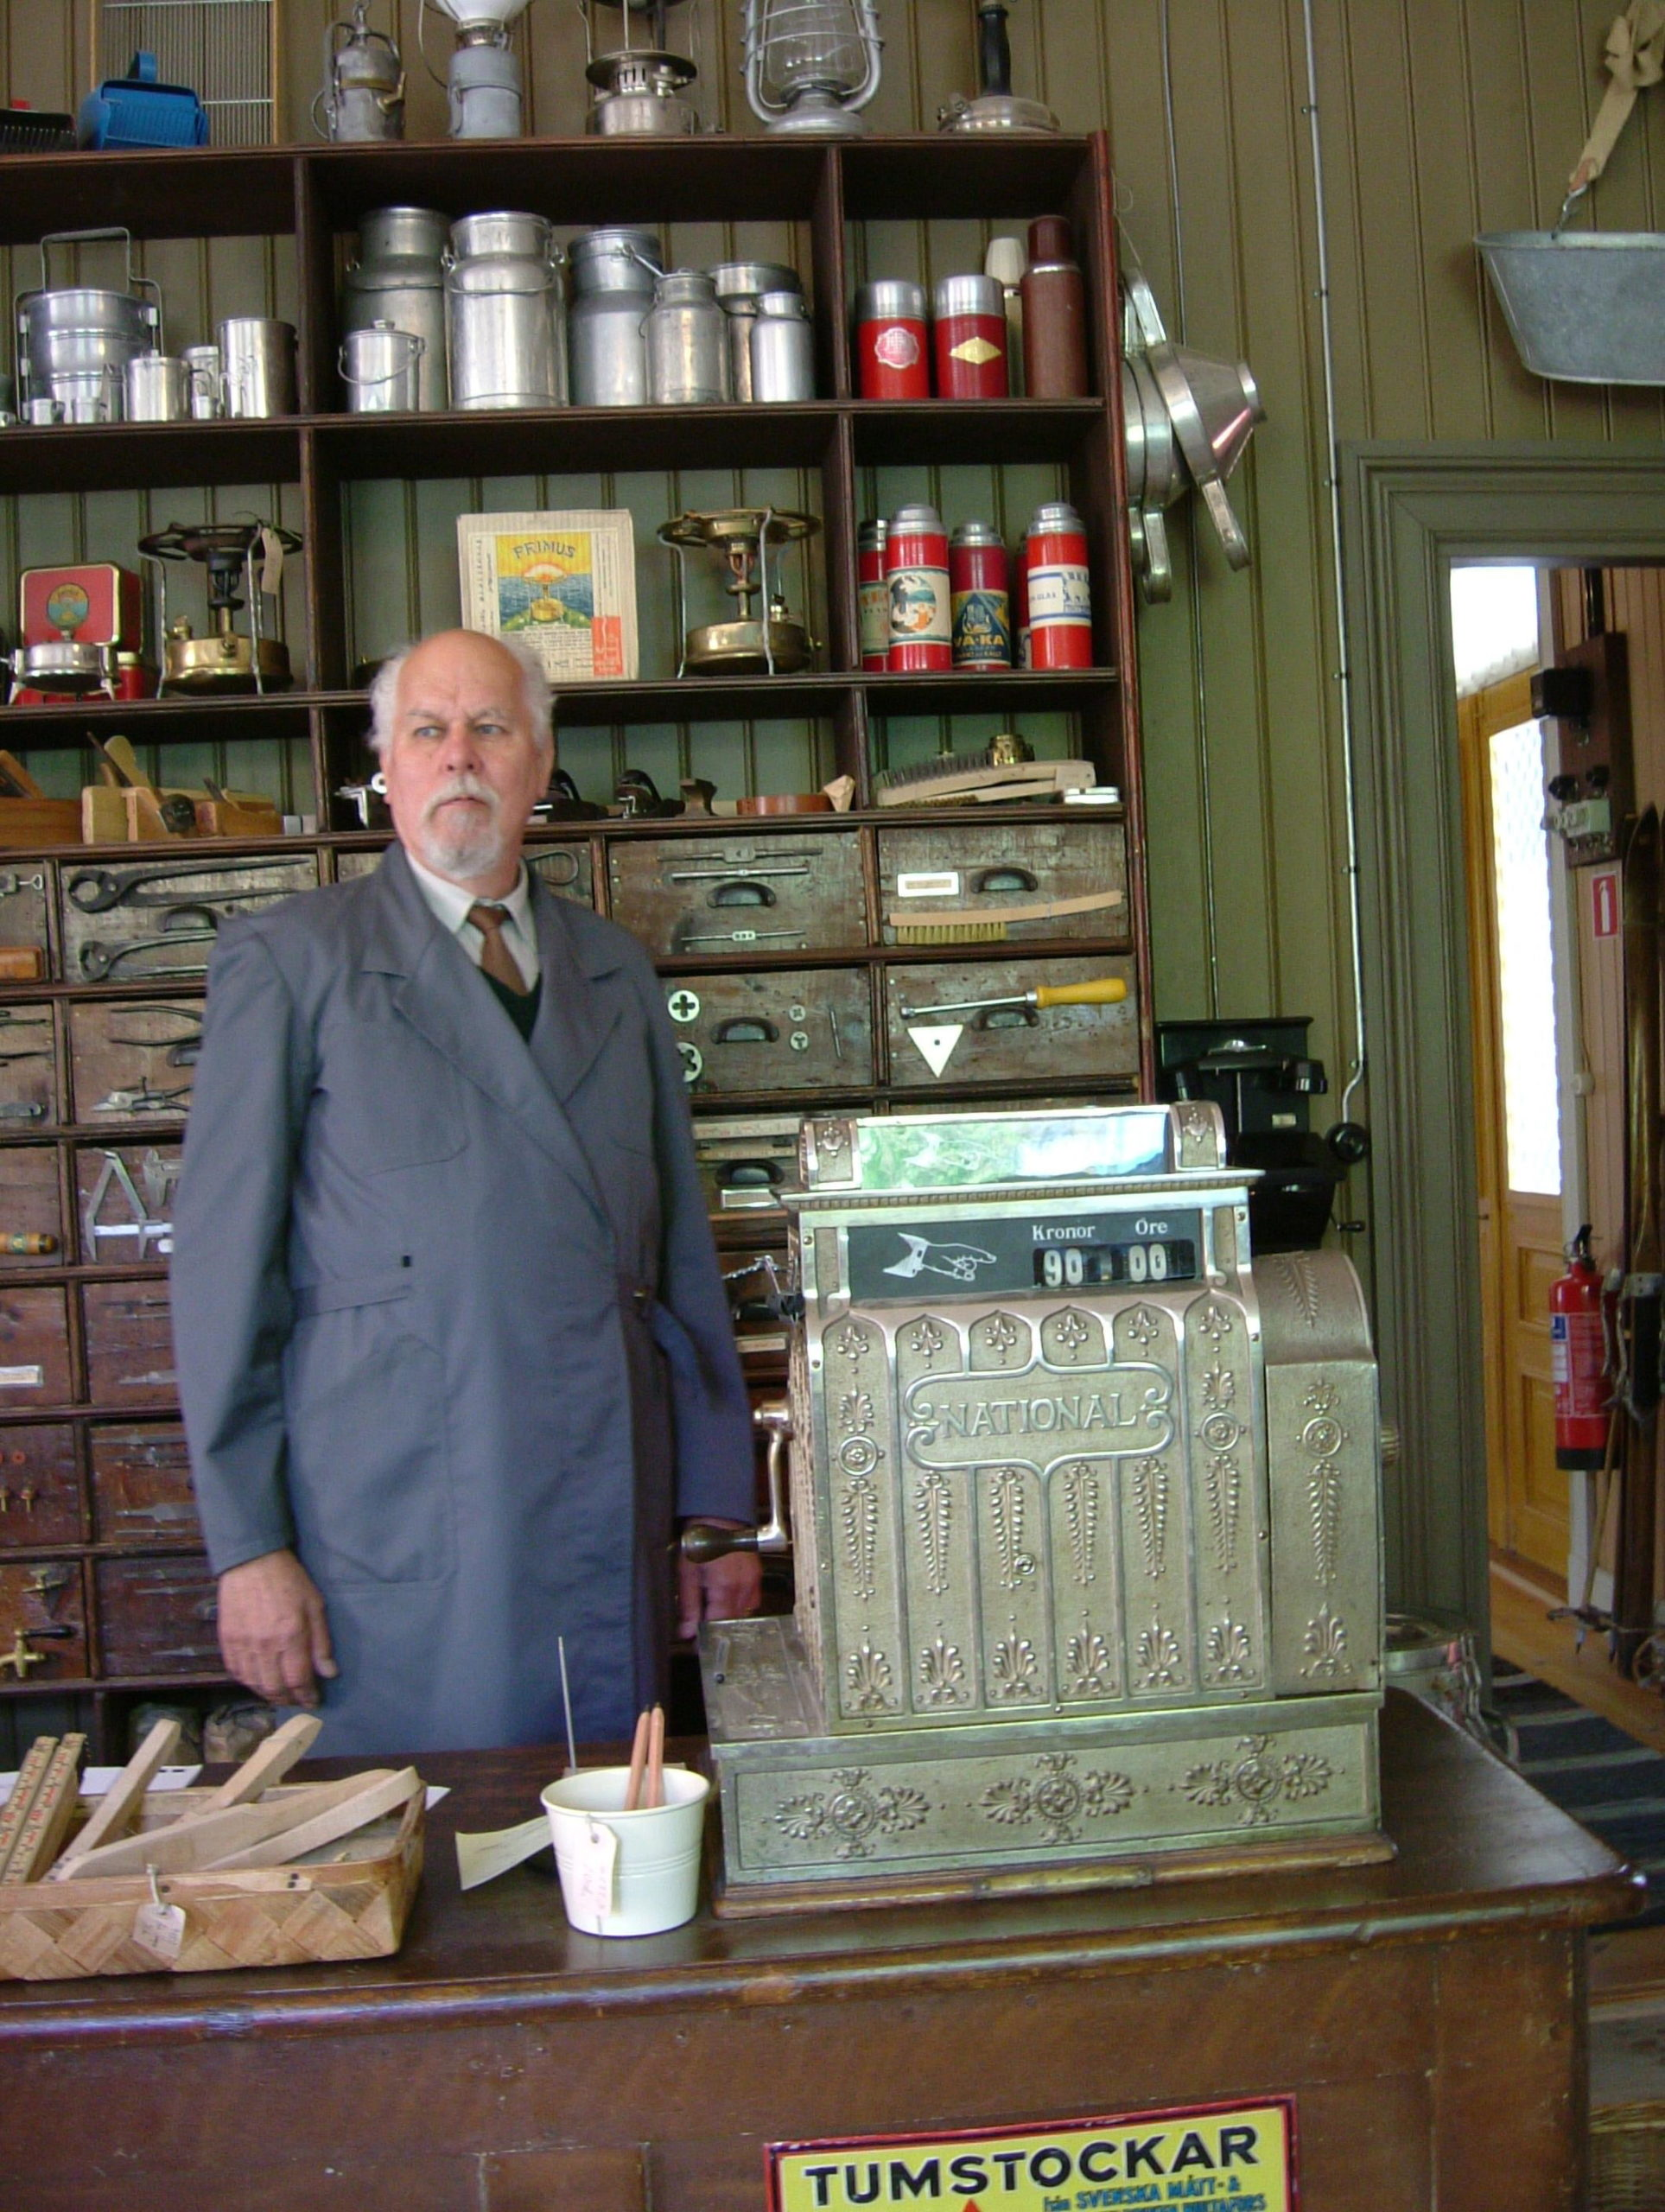 Old-time pharmacy checkout counter at Skansen